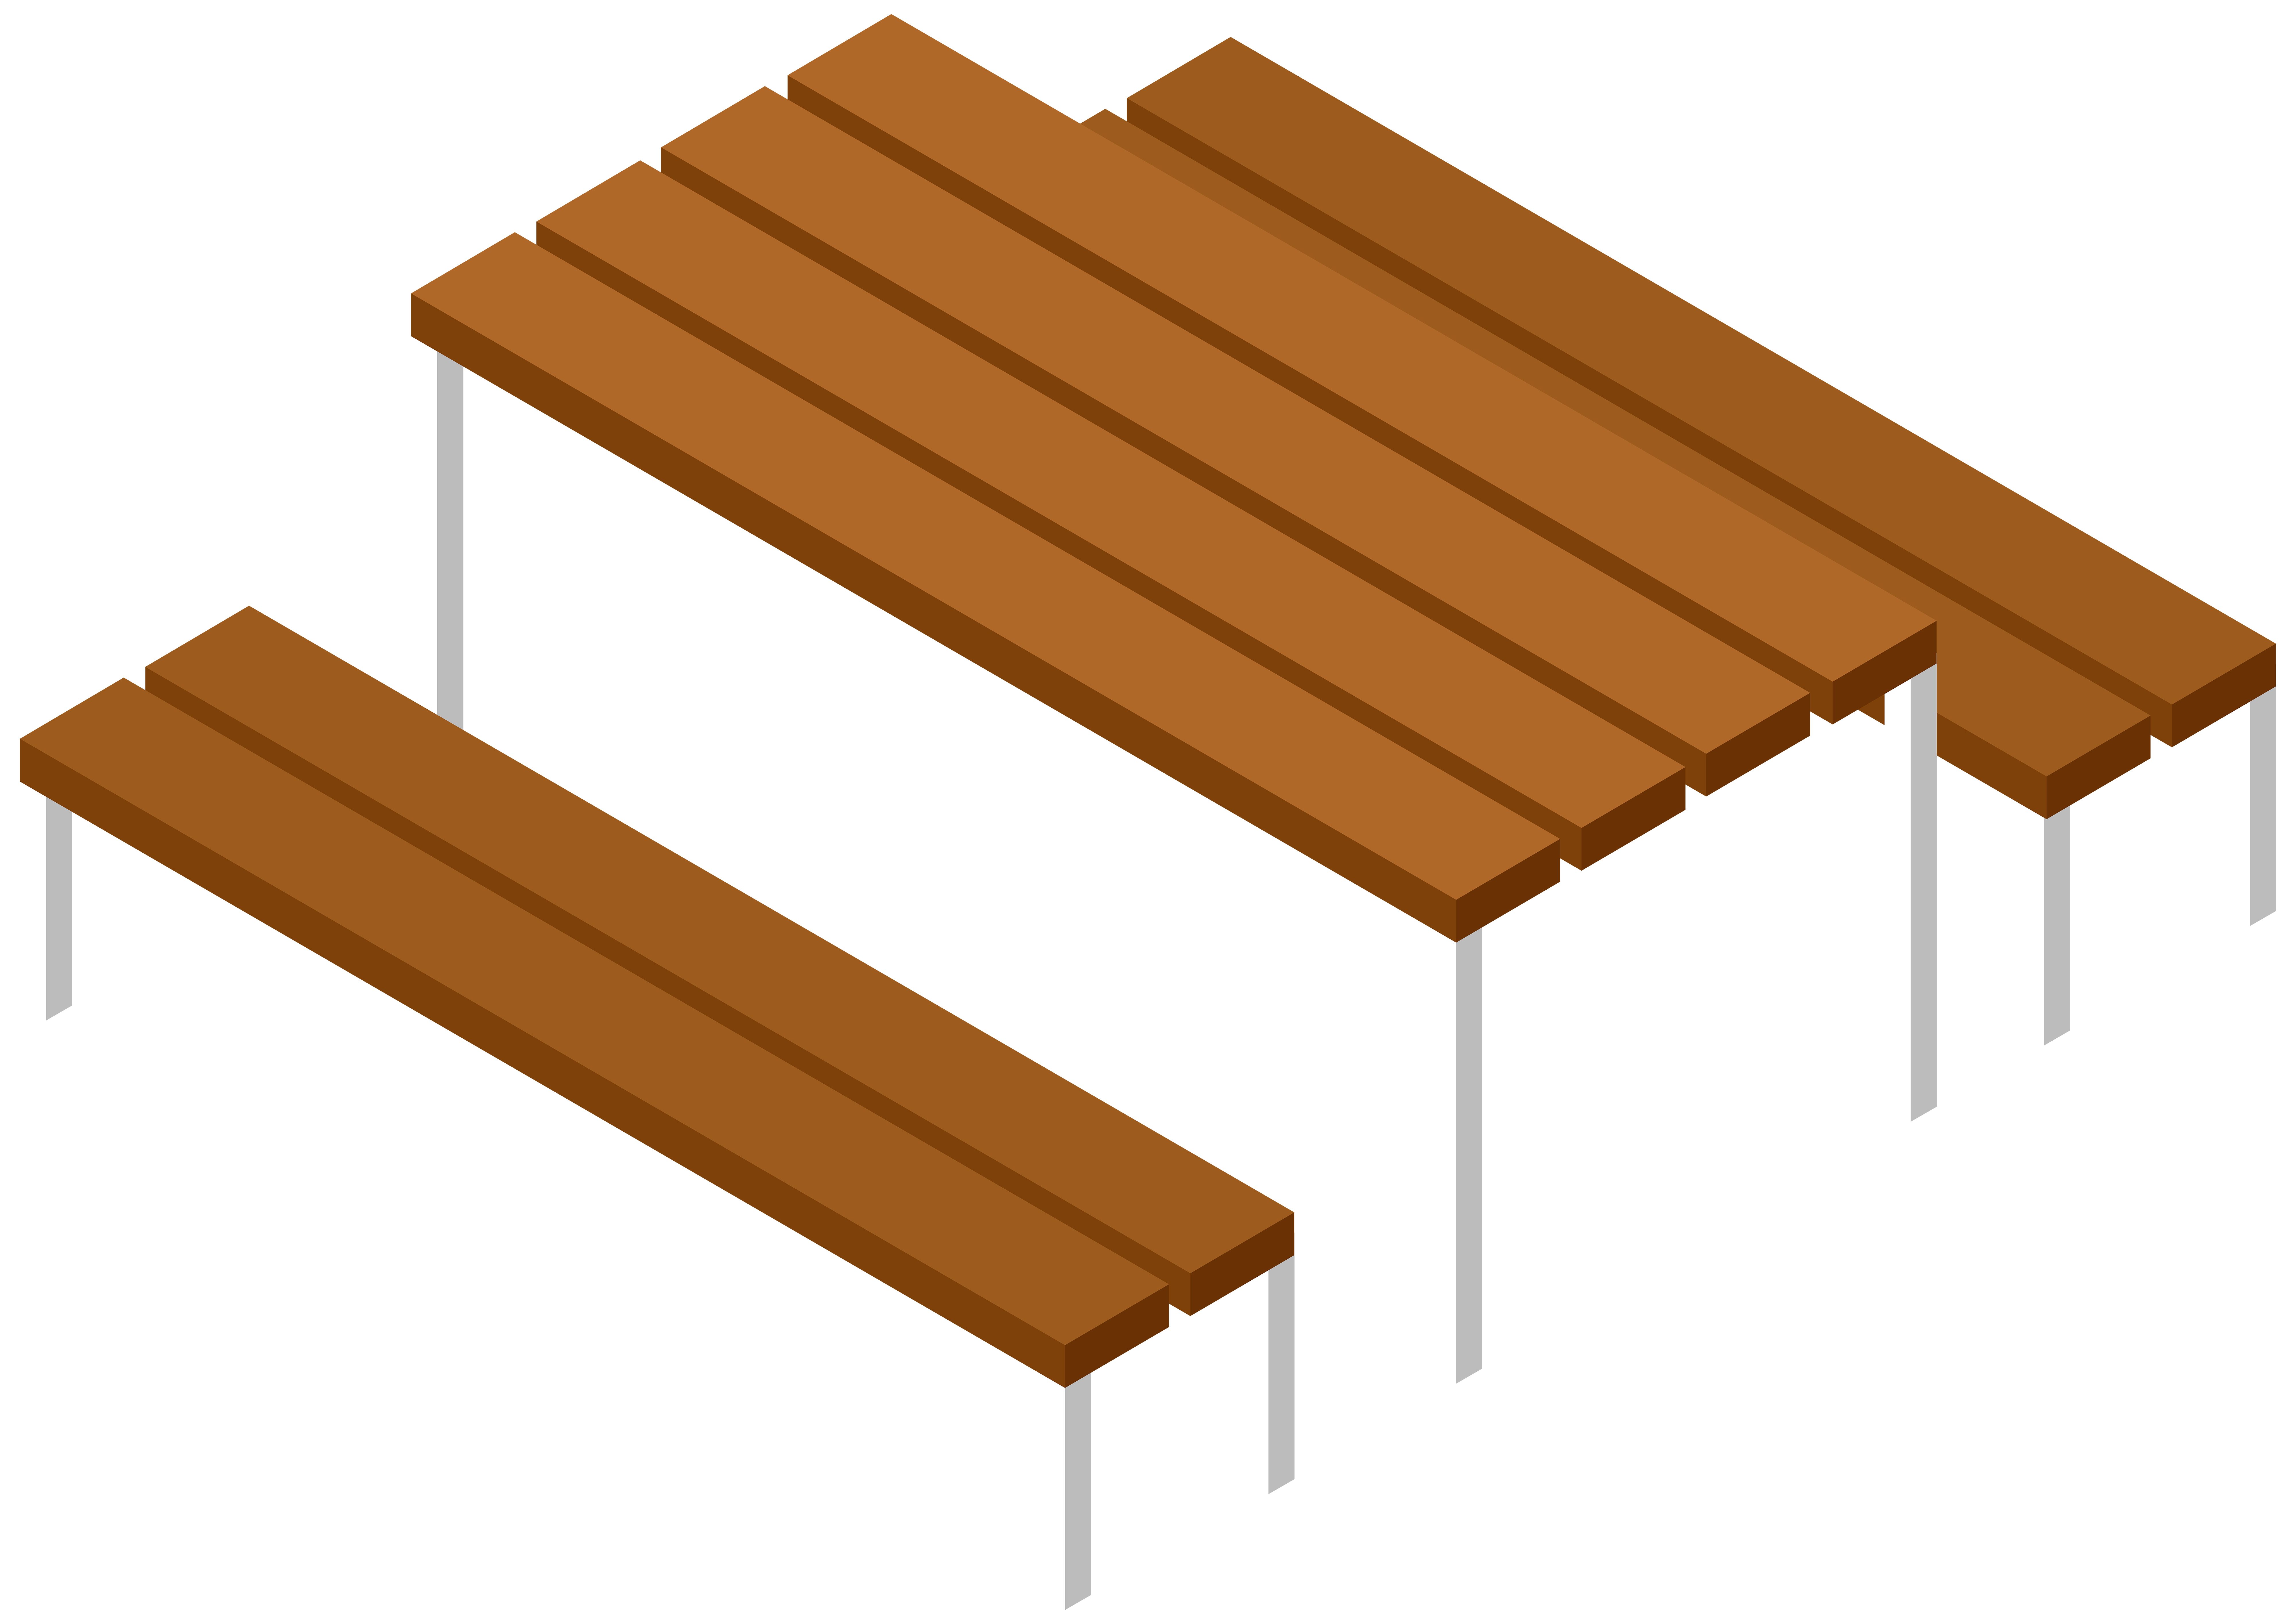 picnic table png